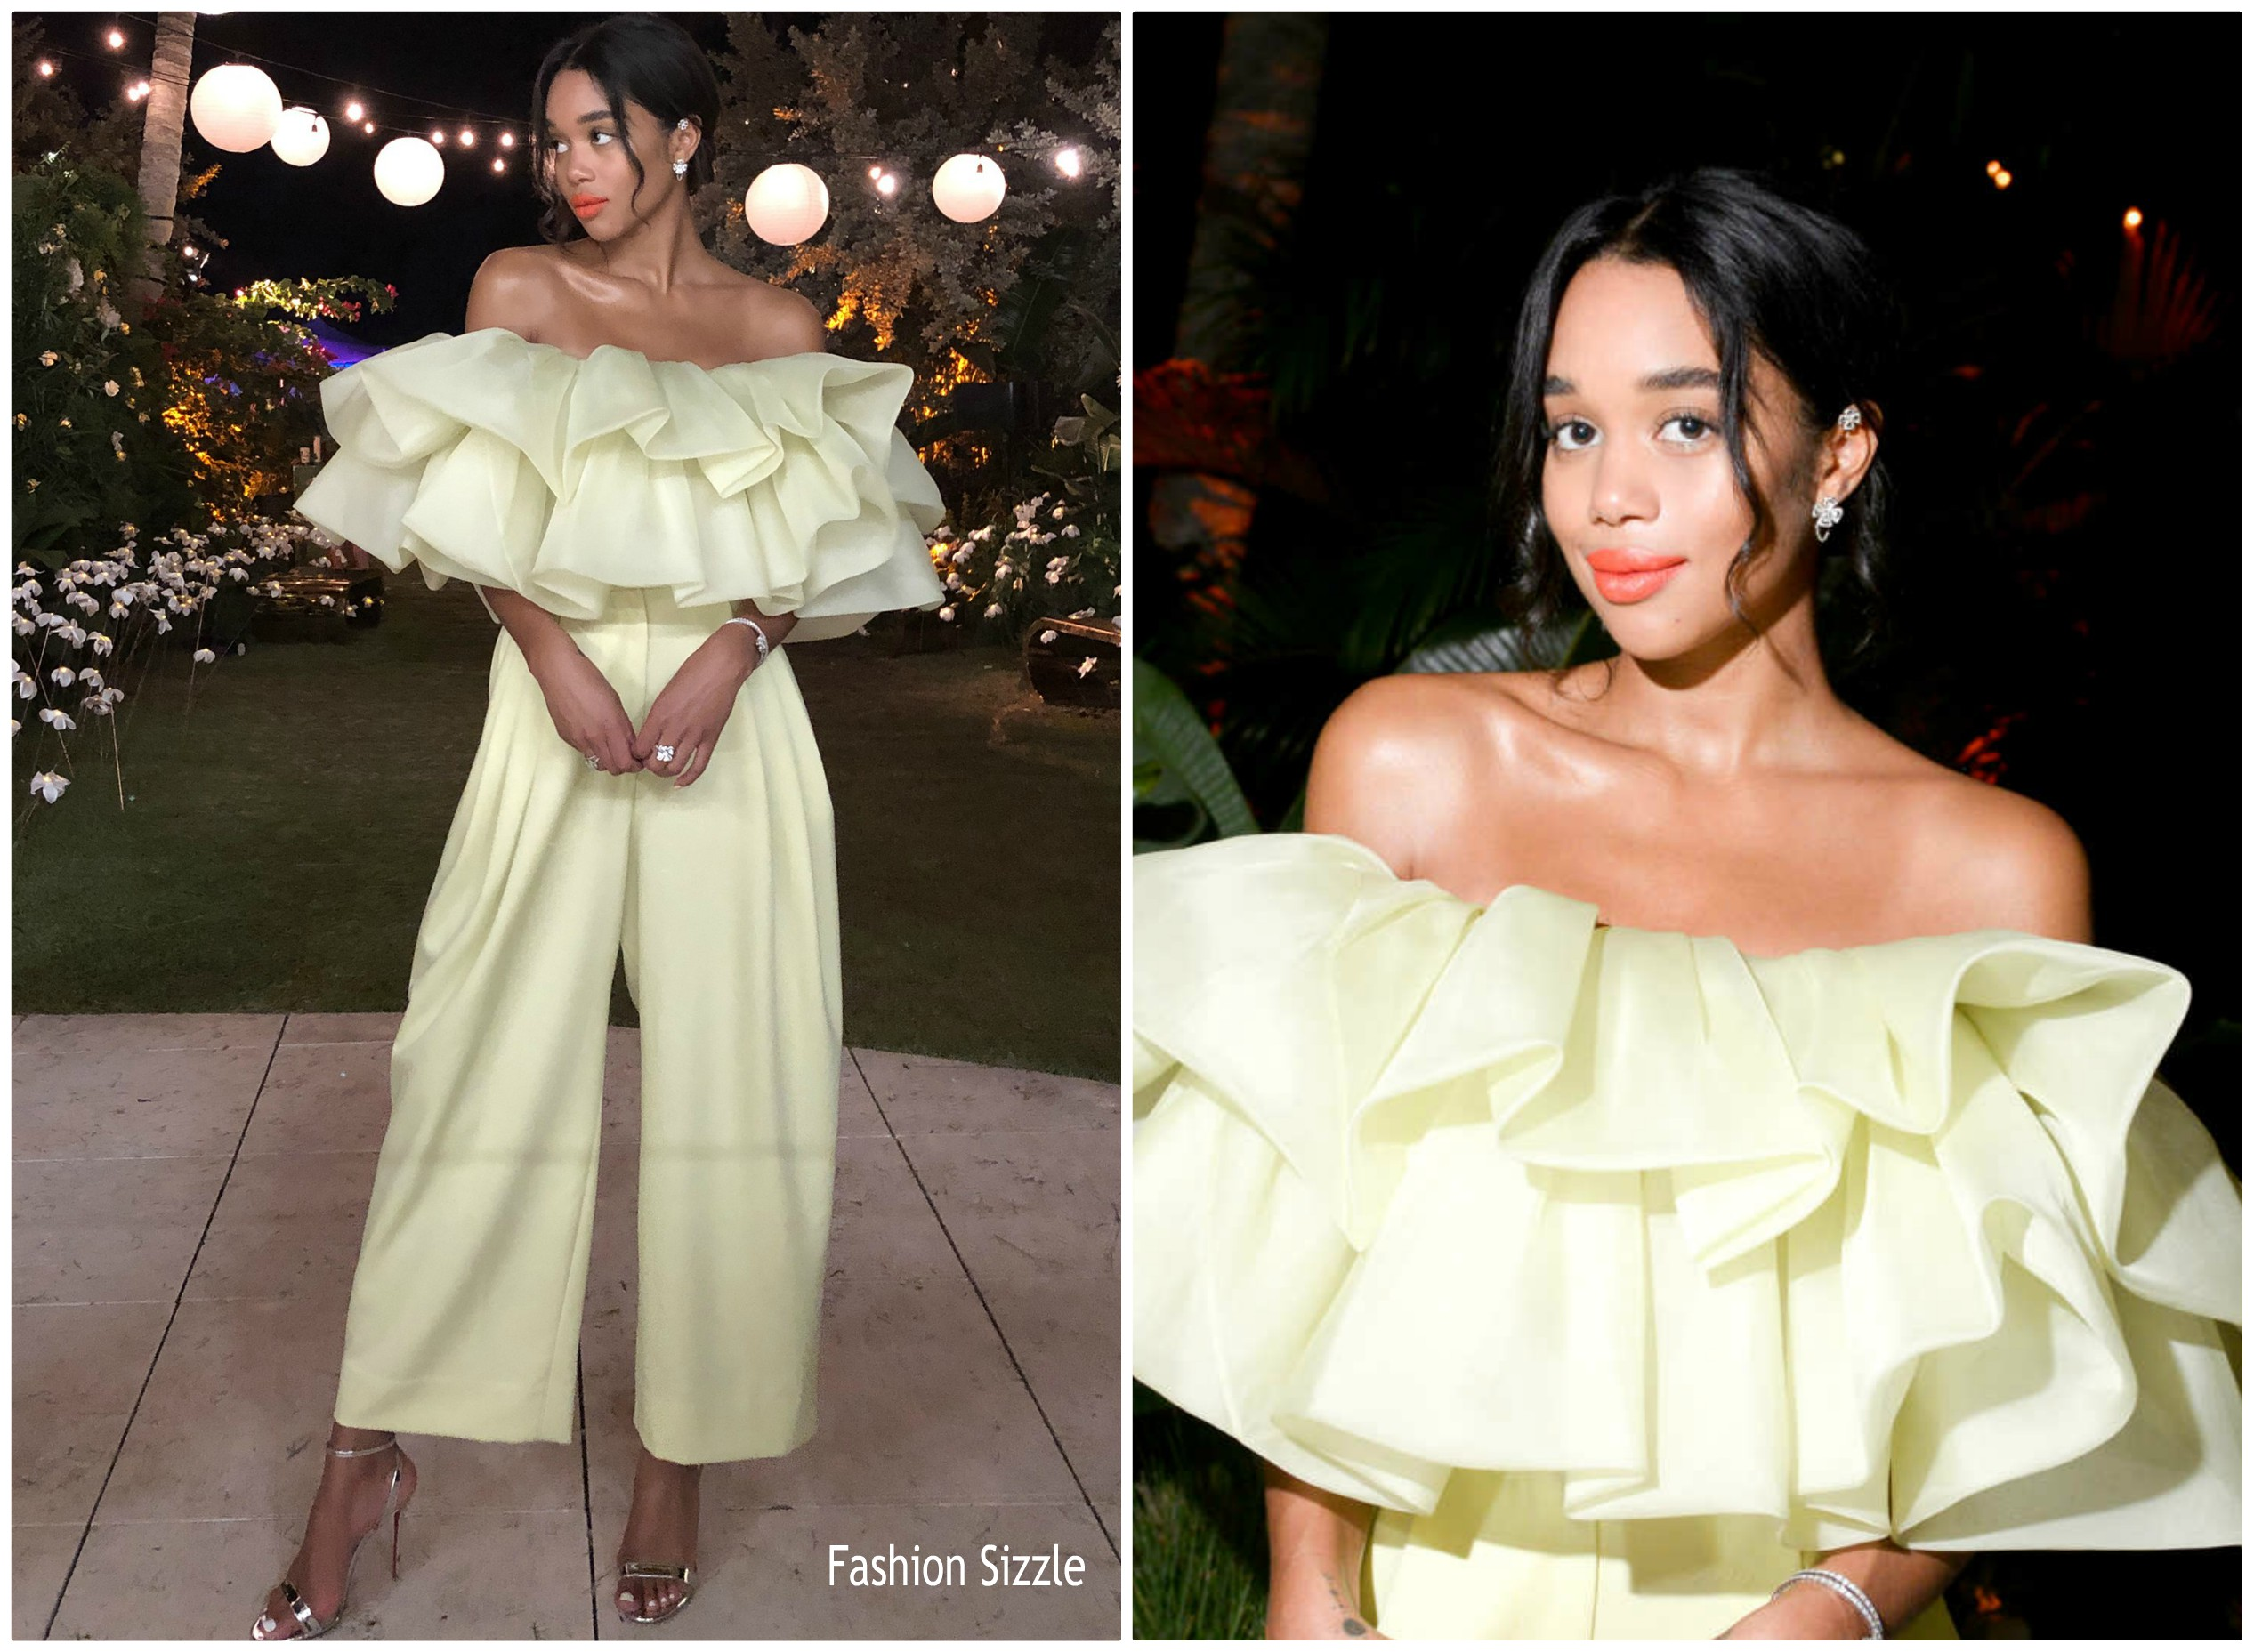 laura-harrier-in-marc-jacobs-art-basel-miami-beach-2018